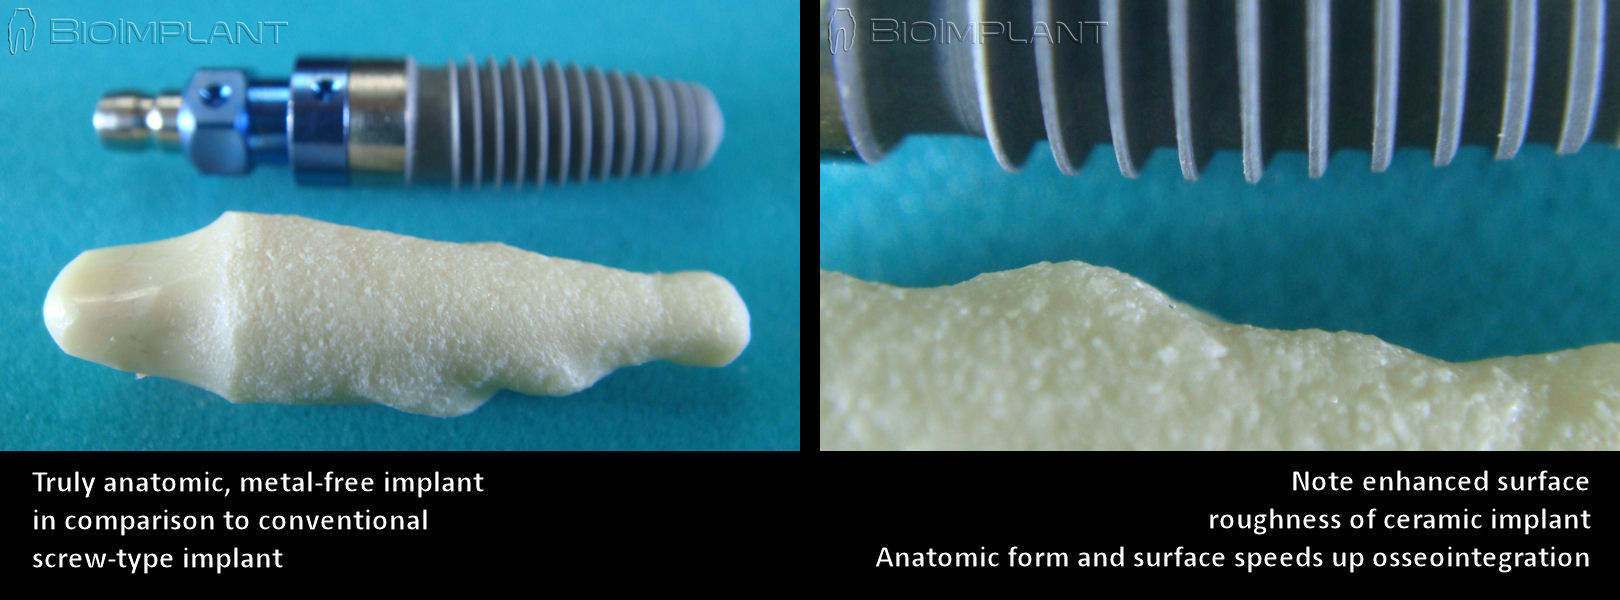 surface_roughness_of_anatomic_implant